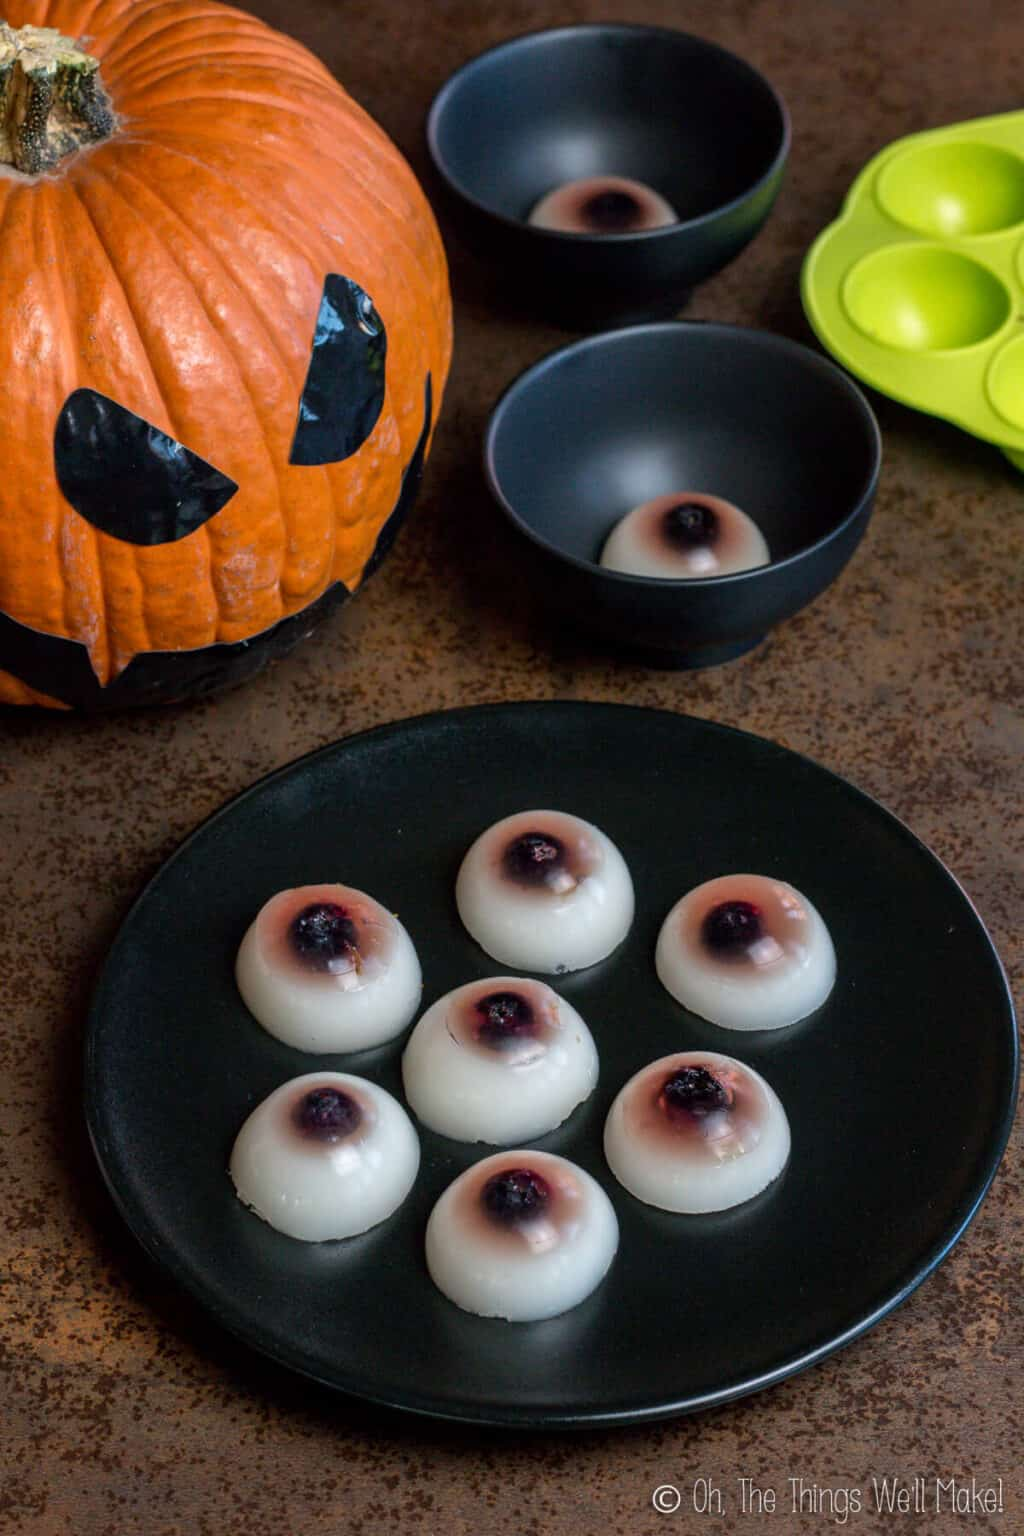 A black plate full of seven gummy eyeballs with a Jack-o-Lantern in the back and several black bowls with one gummy eyeball in them.